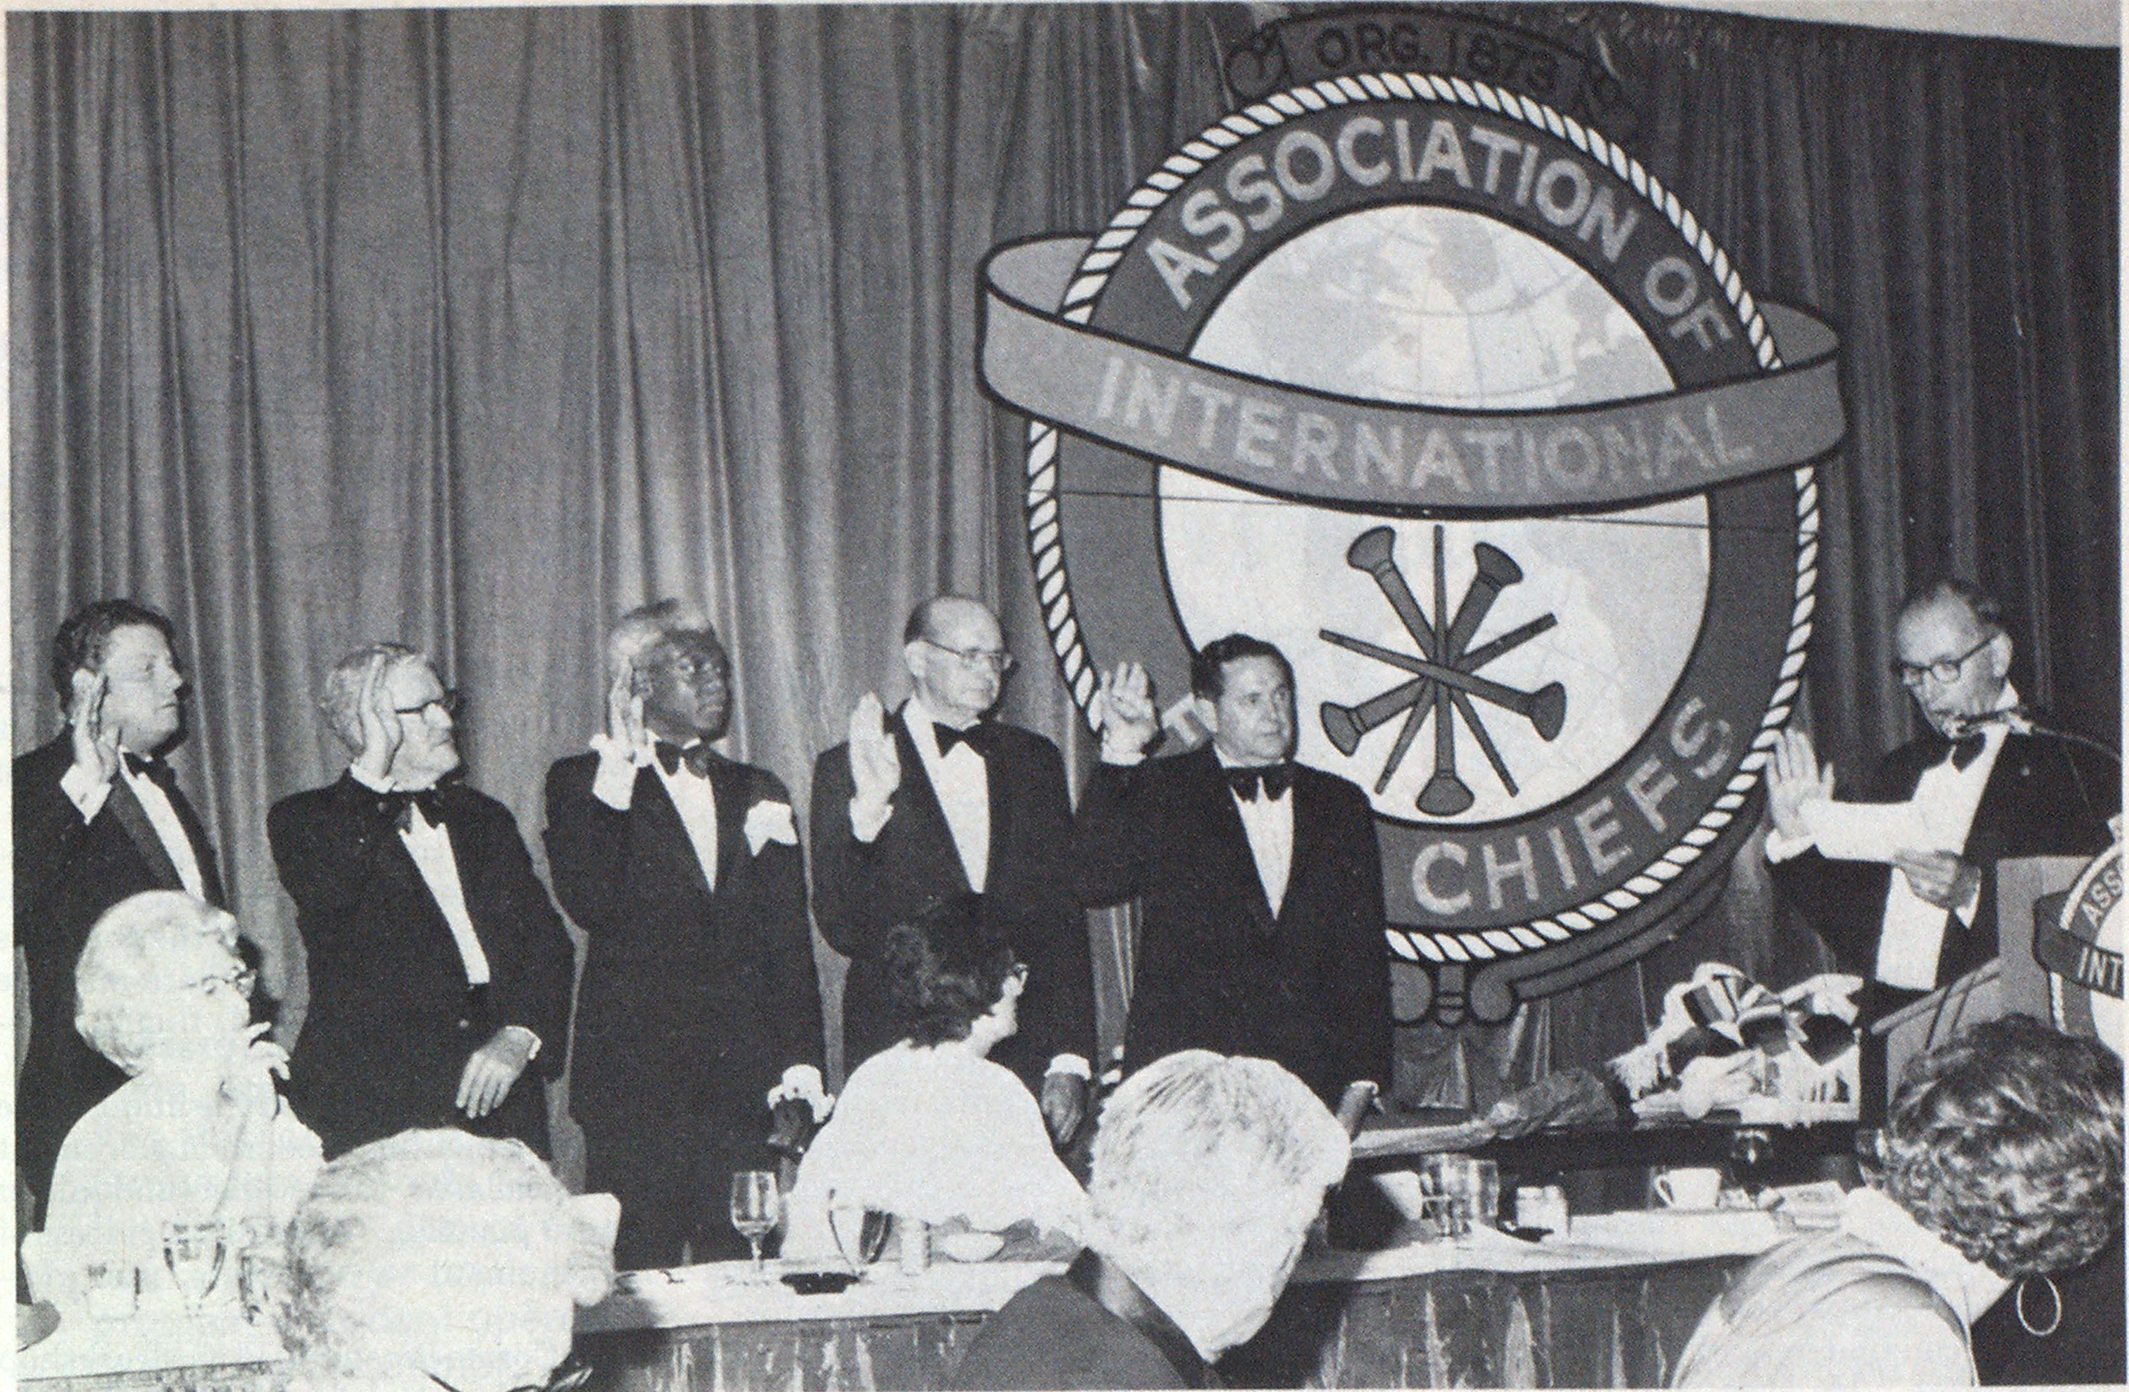 Officers elected at the IAFC 103rd Annual Conference in San Antonio are installed by Past President John F. Hurley, Rochester, N. Y., extreme right. From left are immediate Past President David B. Gratz, Montgomery County, Md.; Treasurer G. A. Mitchell, Opelika. Ala.; 2nd Vice President James H. Shern, Pasadena. Calif.; 1st Vice President John L. Swindle, Birmingham, Ala.; and President Myrle K. Wise, Denver, Colo.